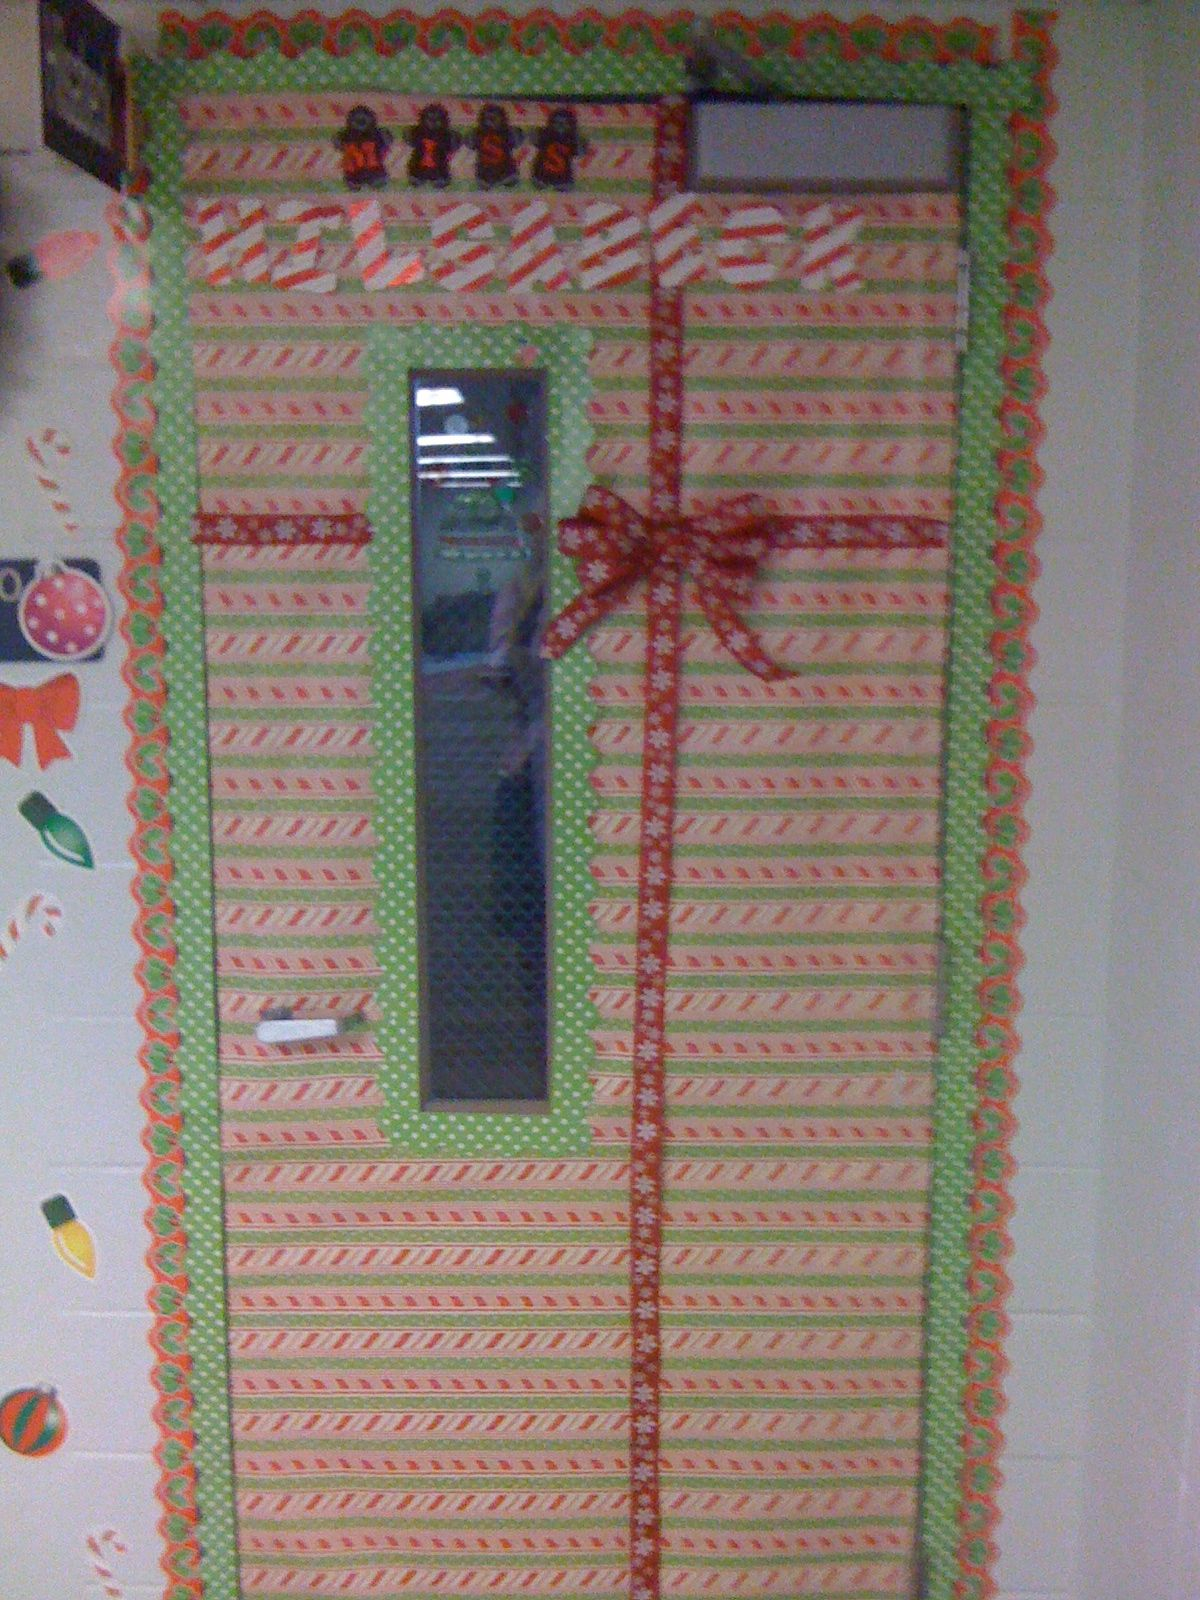 Christmas Front Door---wrapping paper or fabric to (cover up window).